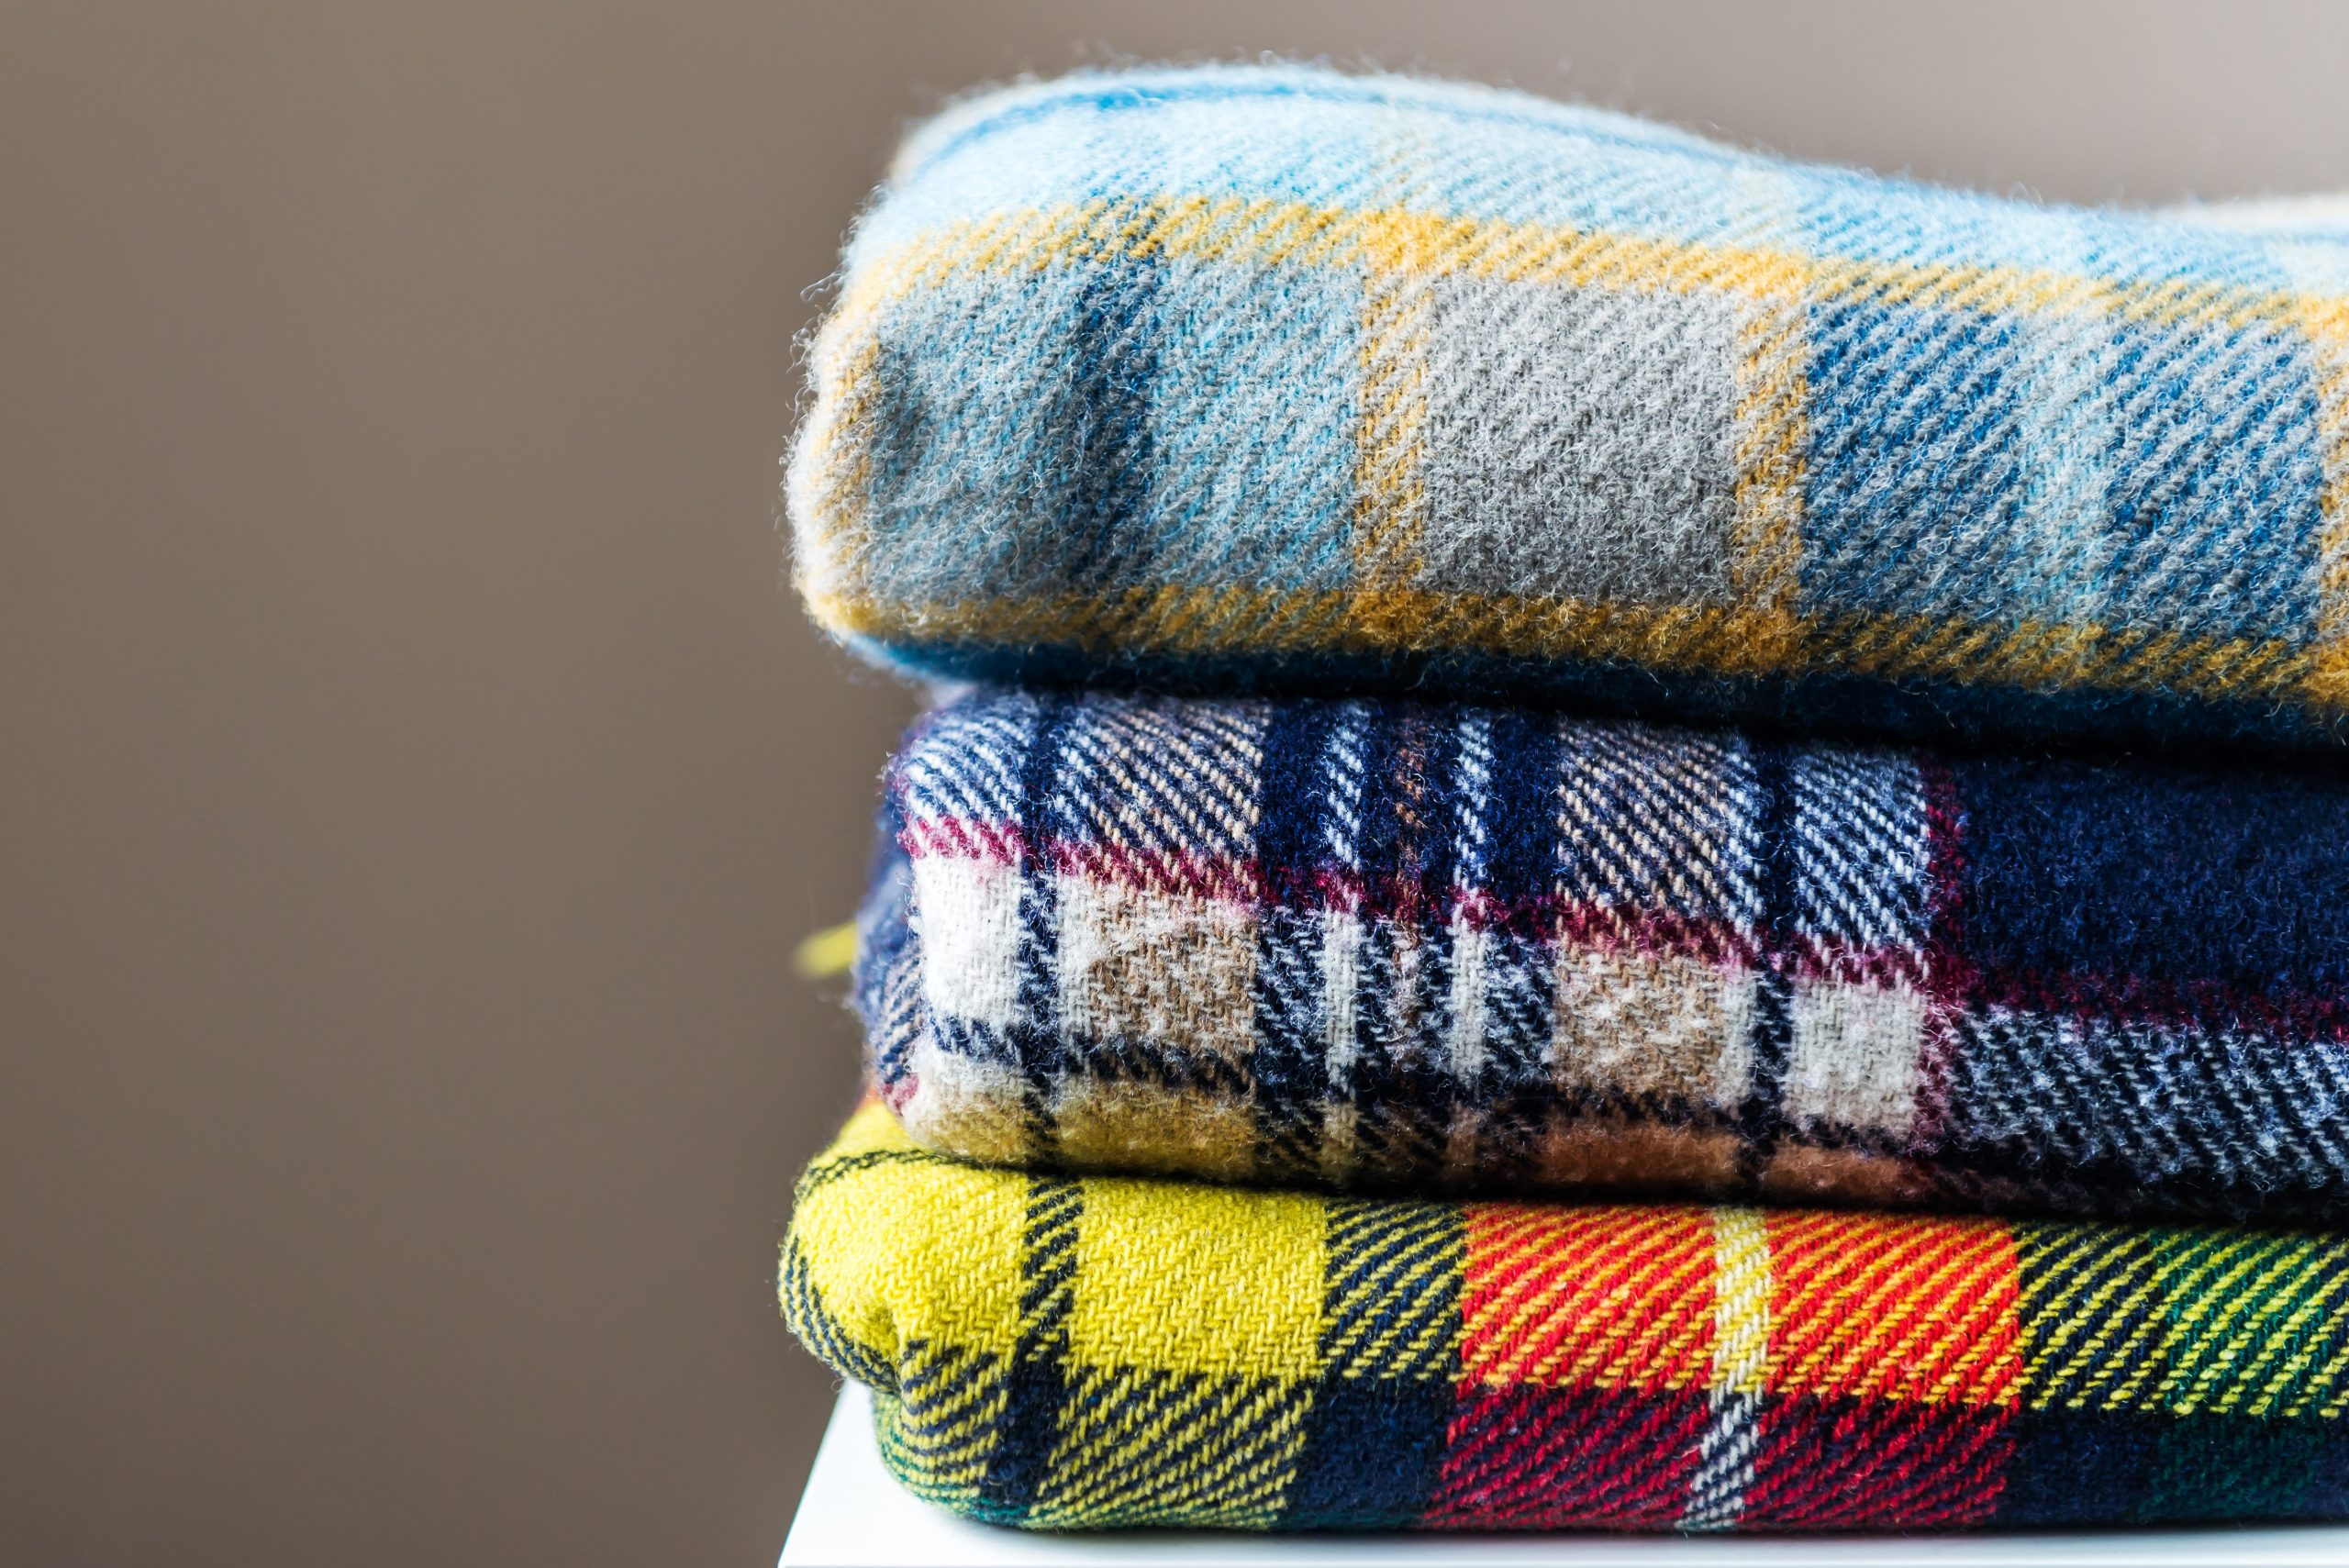 300 Blankets and Handwarmers will be handed out during Heartwarming Outreach